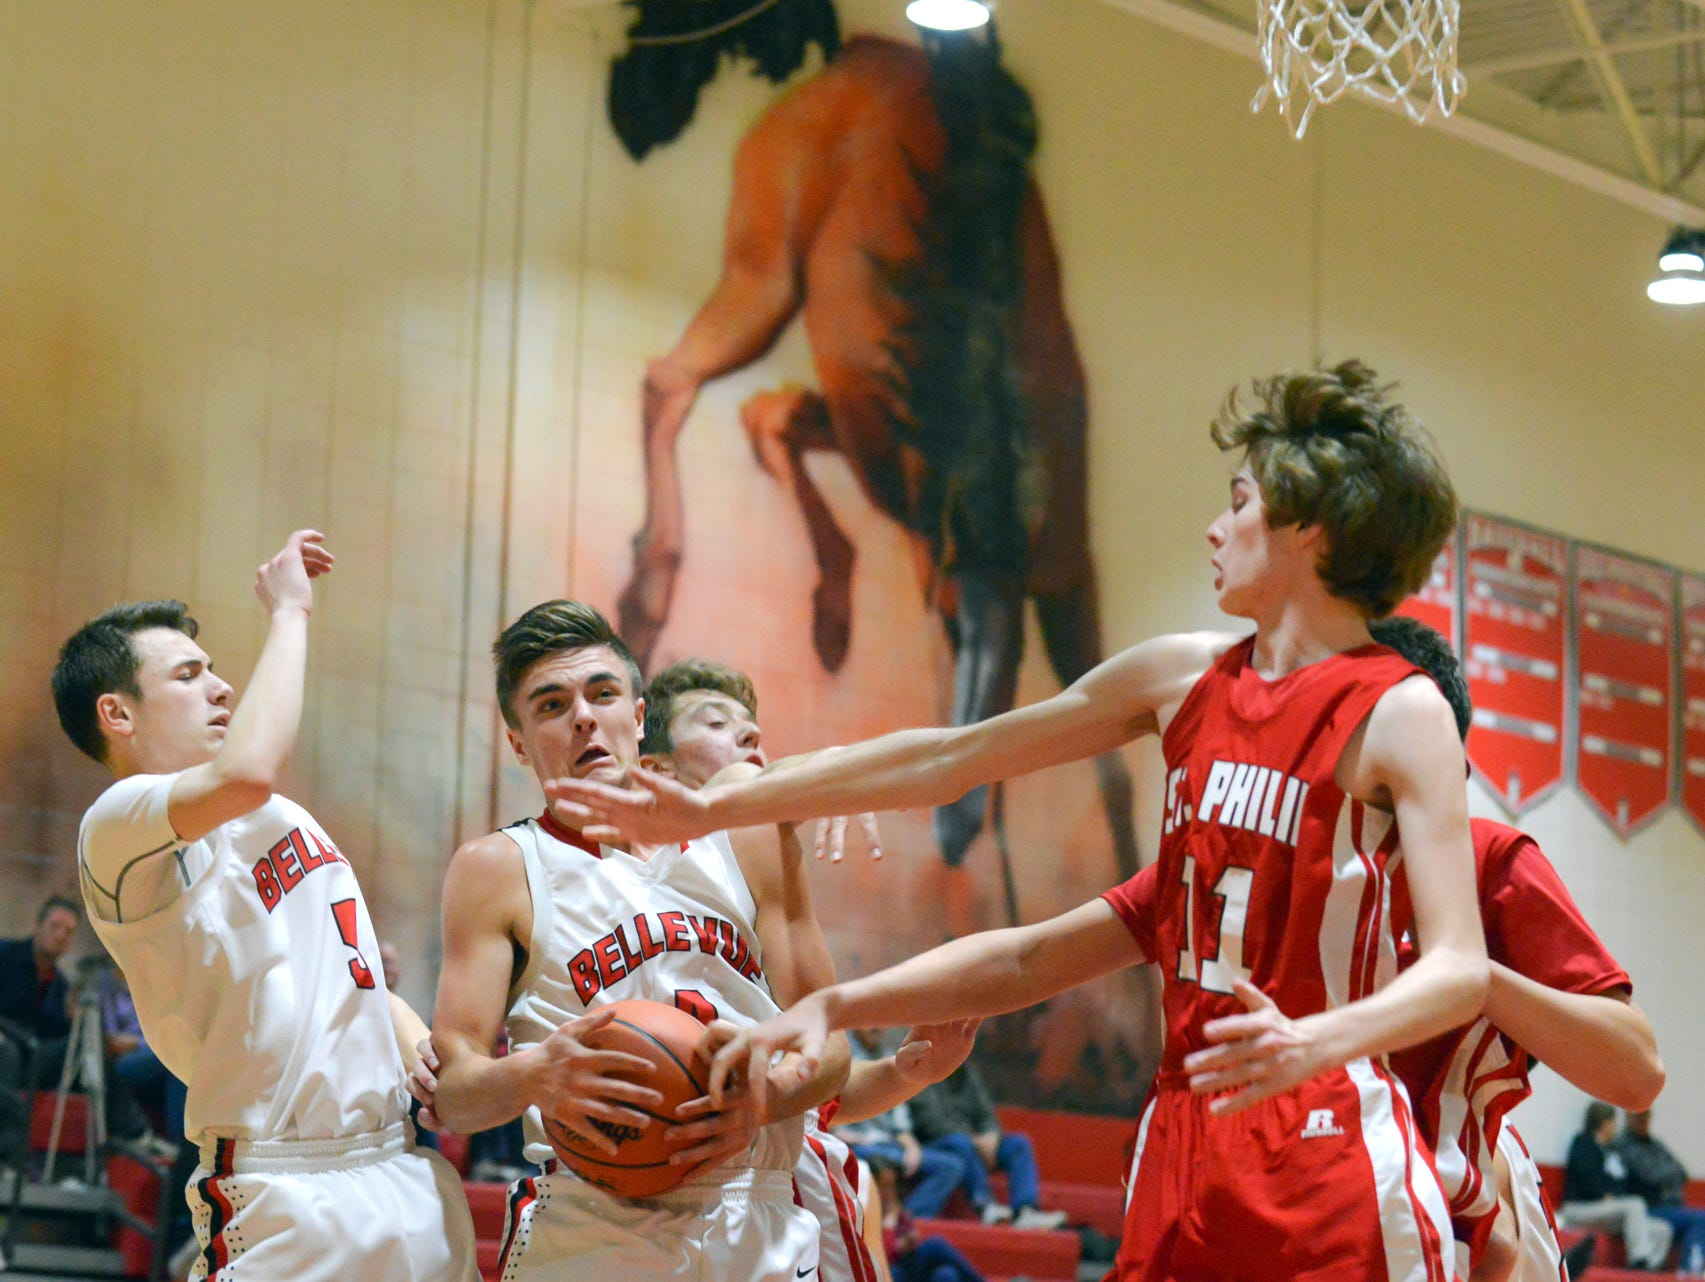 St. Phillip and Bellevue players battle for a rebound.